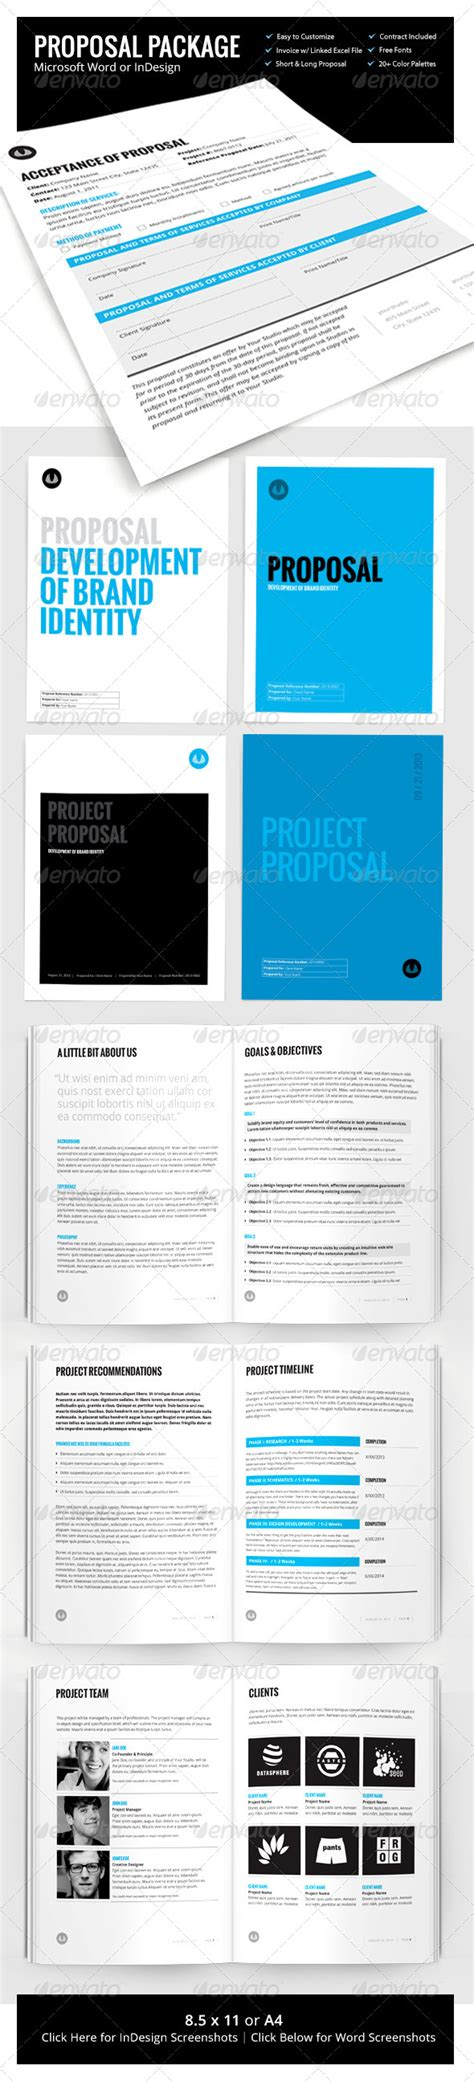 uncategorized 11 project proposal sample for students project